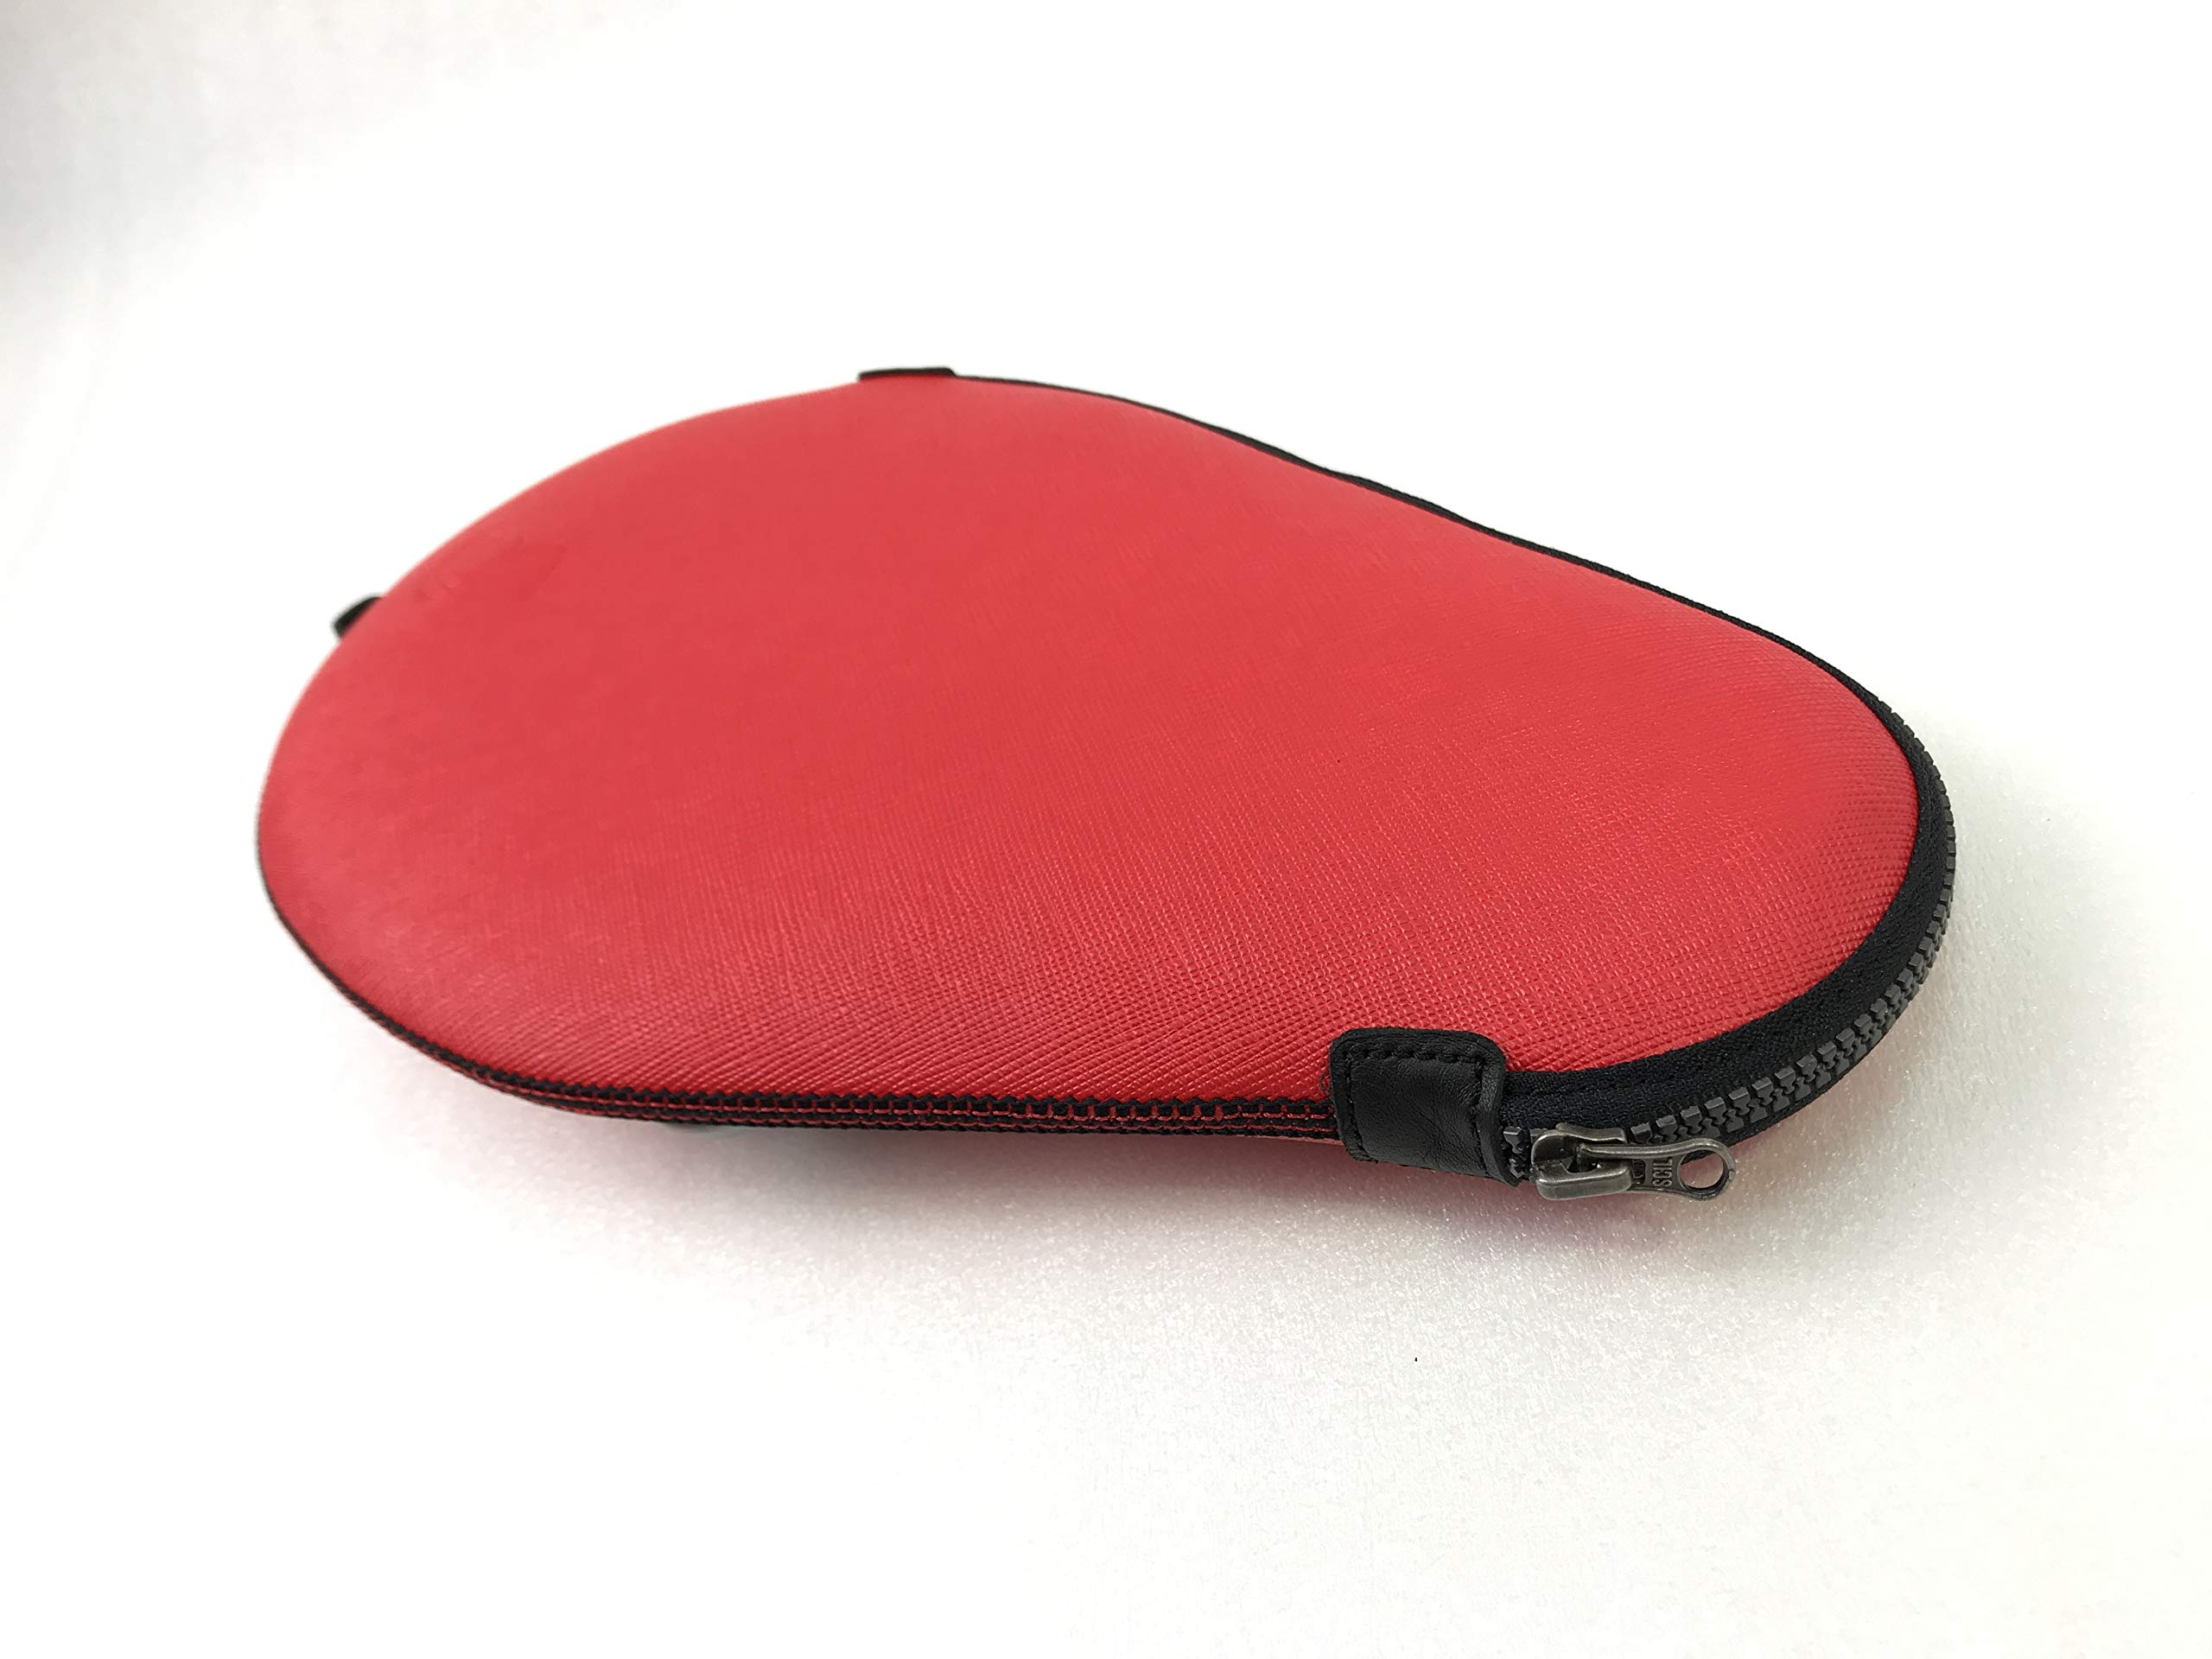 ONEJOY Ping Pong, Table Tennis Racquet Bag,Case,Cover with Zipper AJ61,Loop to Hook, Full Cover 28cm x 17cm for 1 Racquet/Racket/Paddle. by ONEJOY (Image #4)